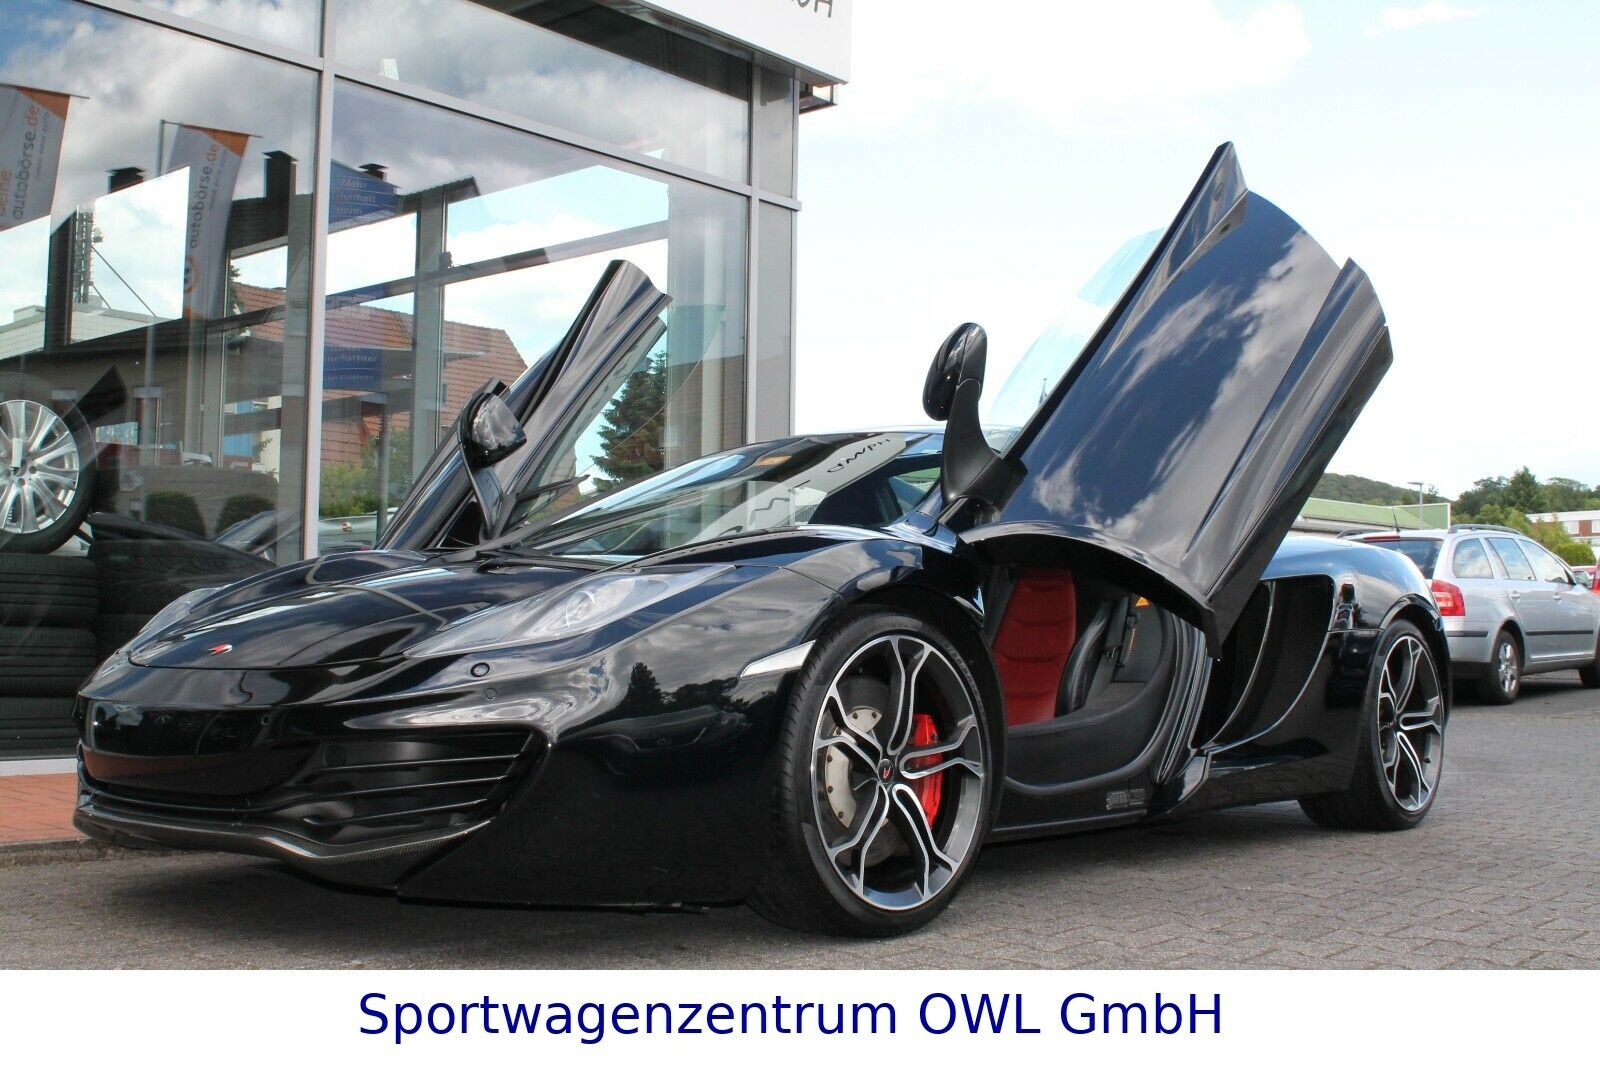 MCLAREN MP4-12C 3.8 V8 Spider*625PS*